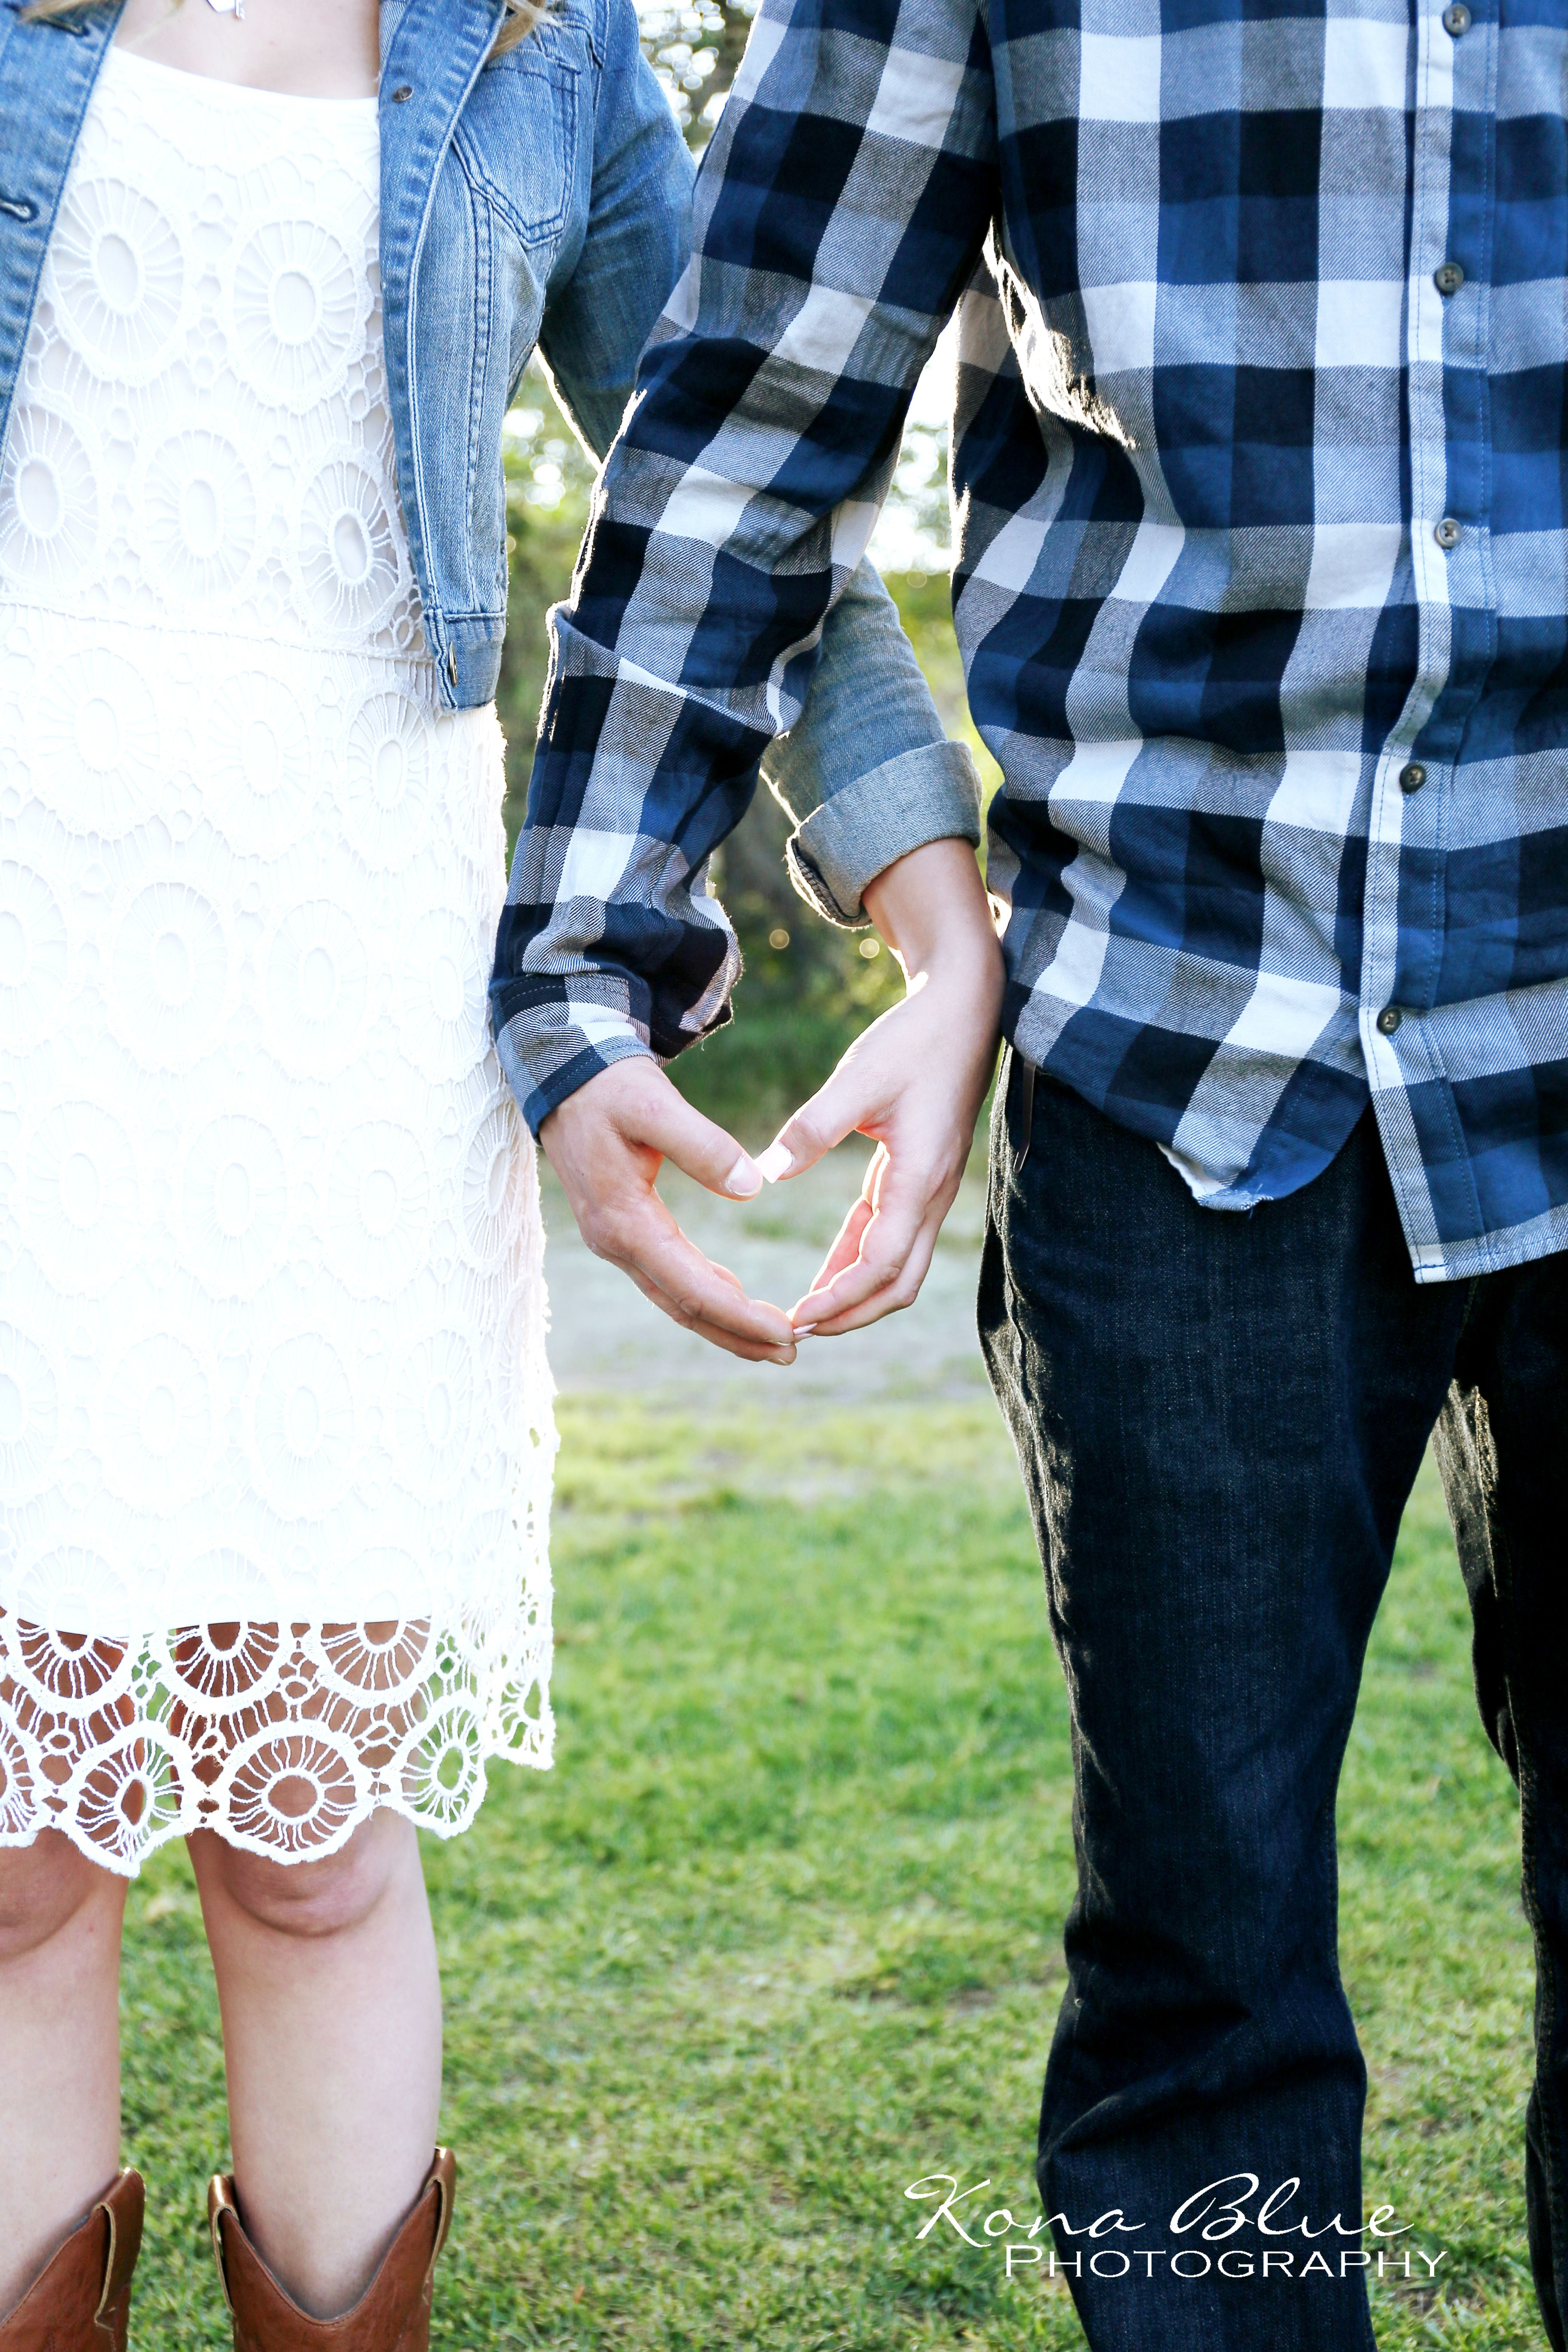 Engagement photo ideas Save the Date Photo Ideas Country Style Engagement Photo Ideas